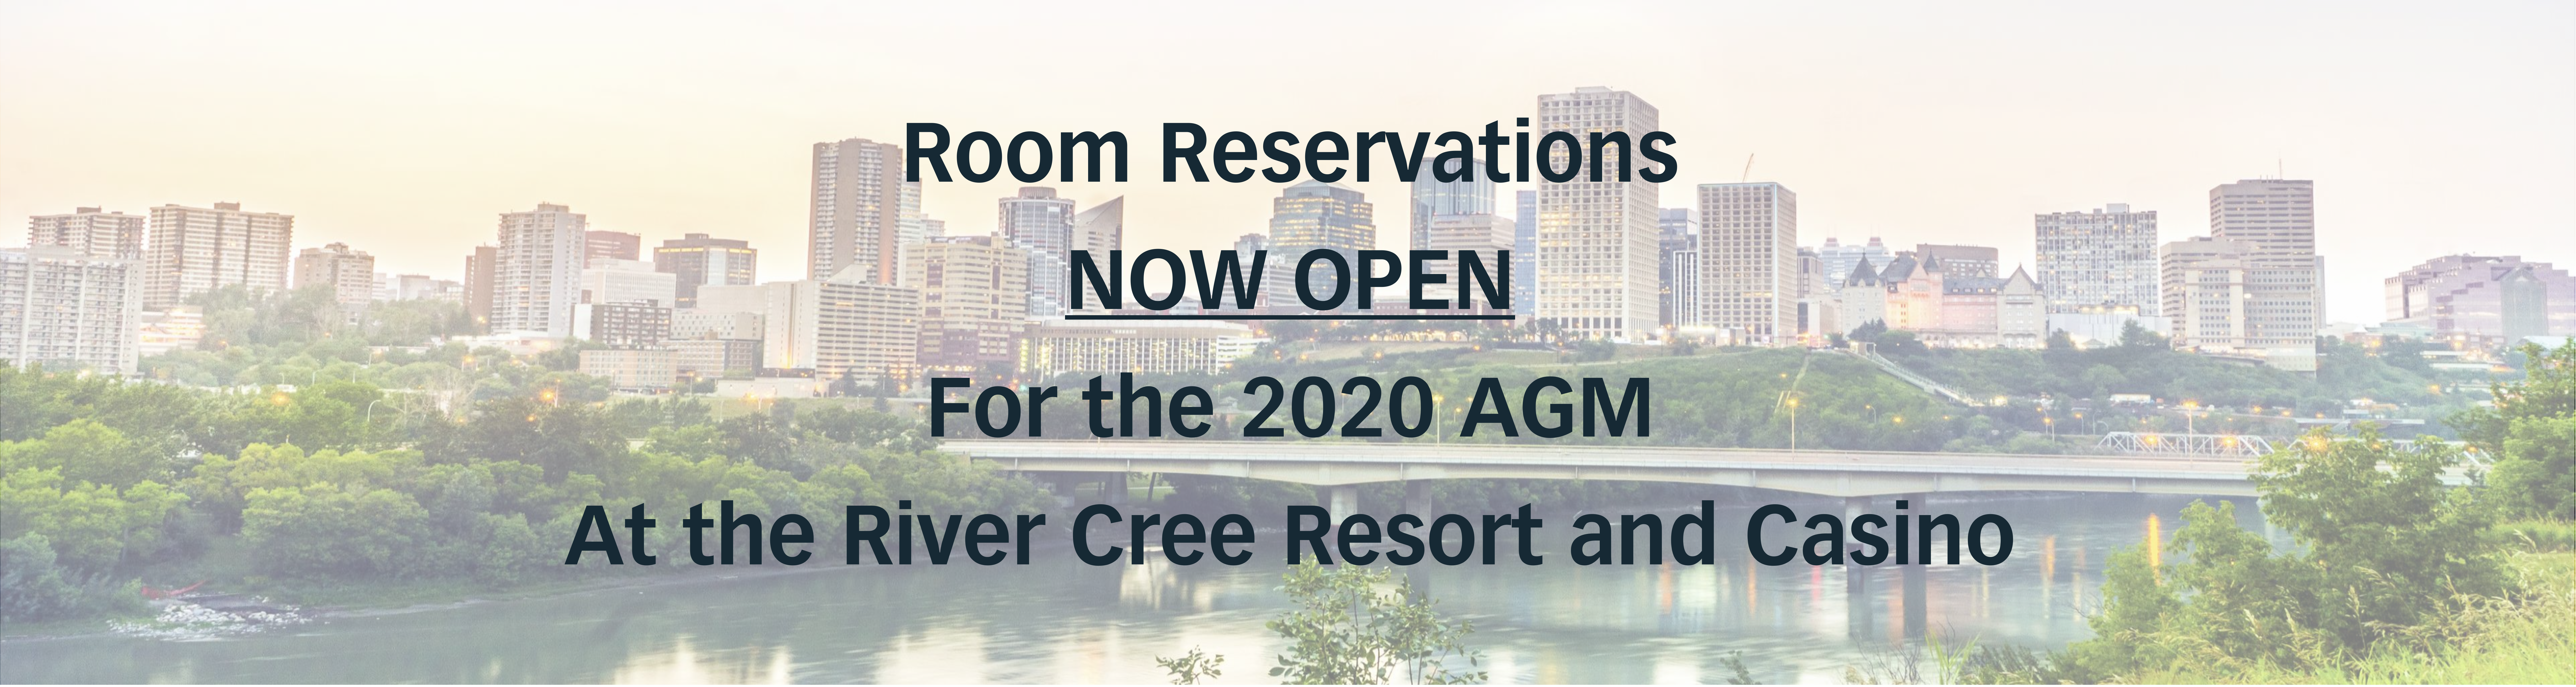 AGM Hotel Reservations